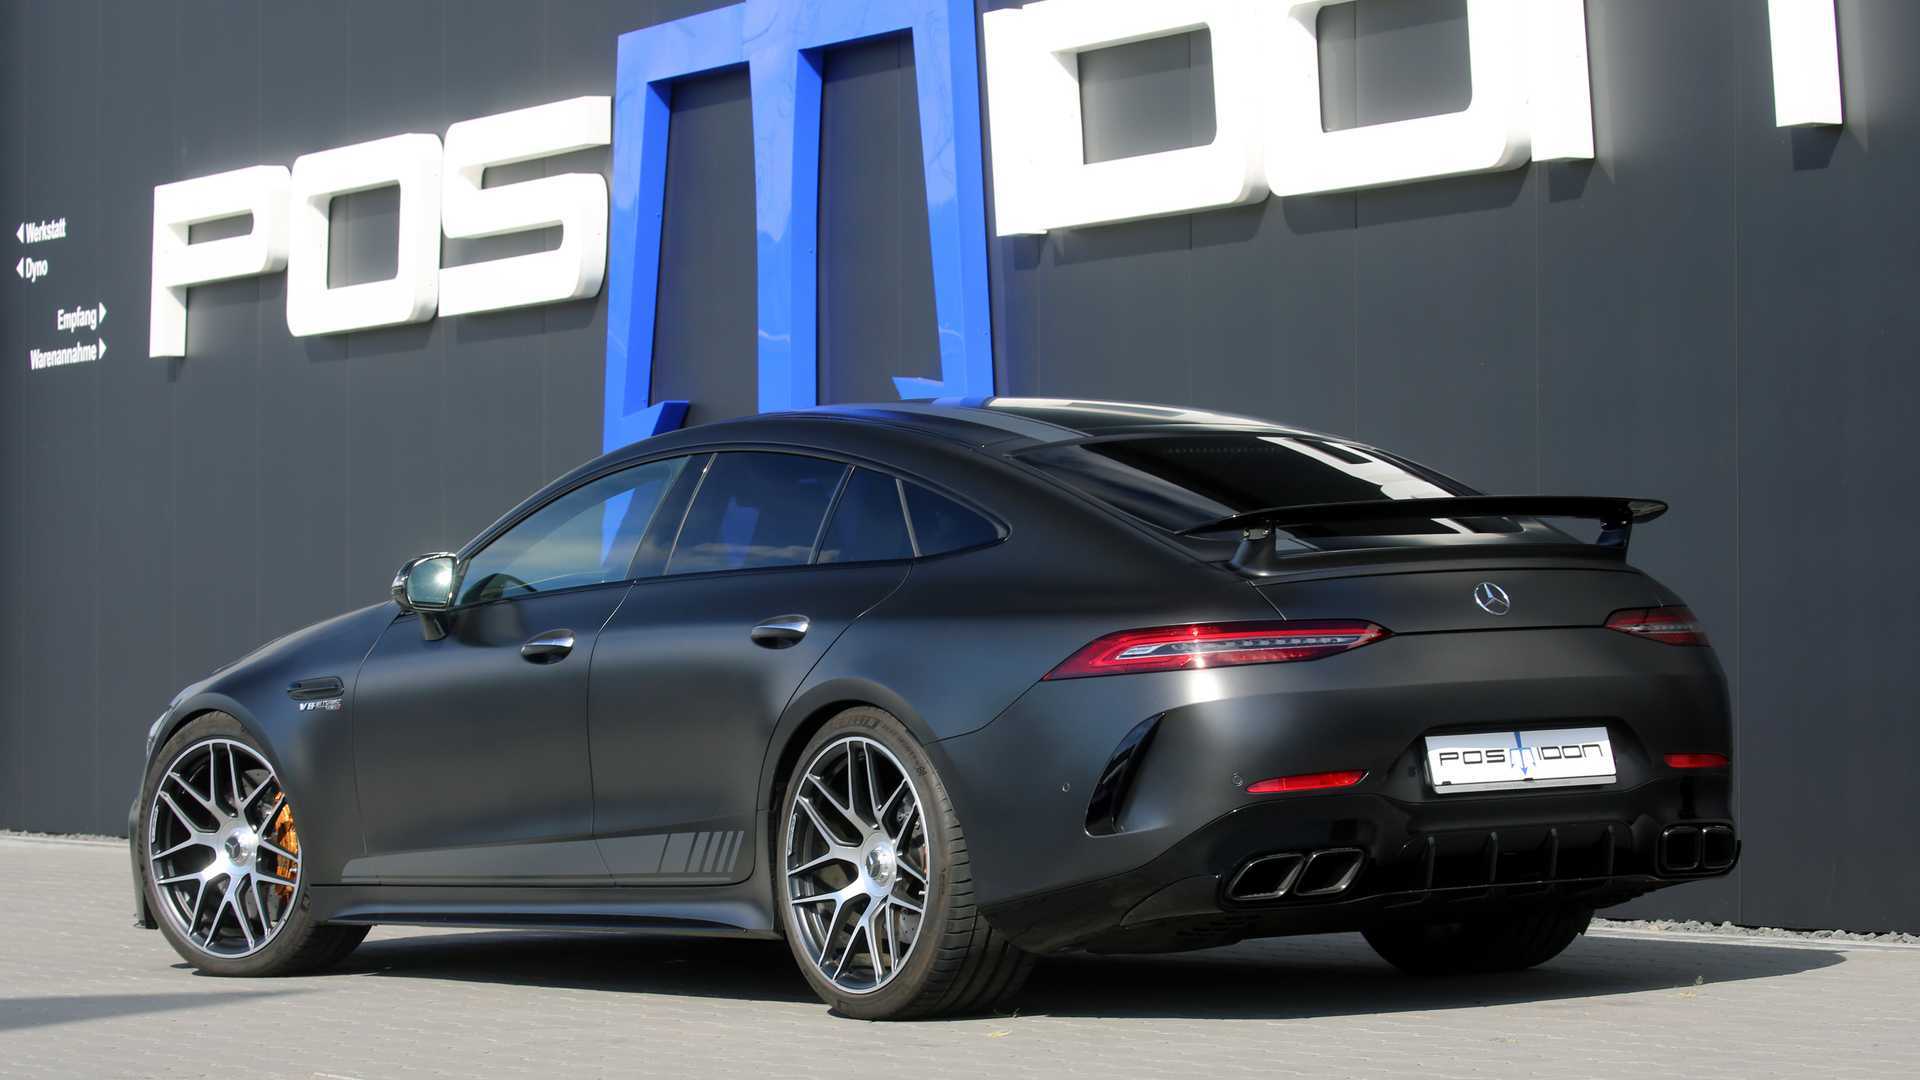 b6477a34-mercedes-amg-gt-63-s-tuning-posaidon-2